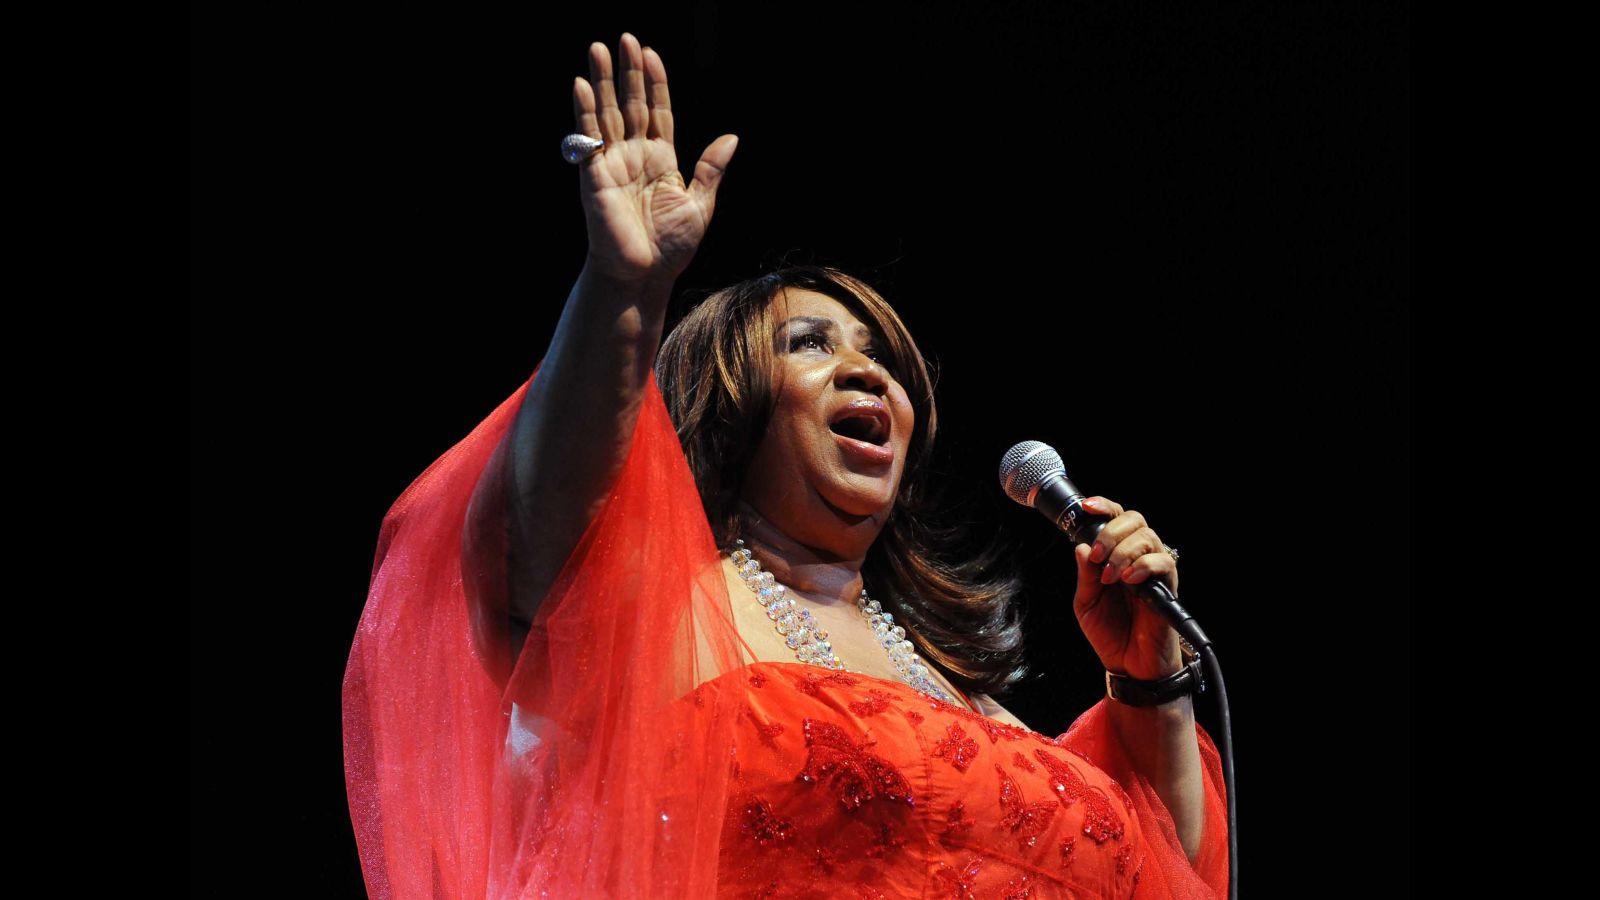 'The Queen of Soul': Aretha Franklin in photos